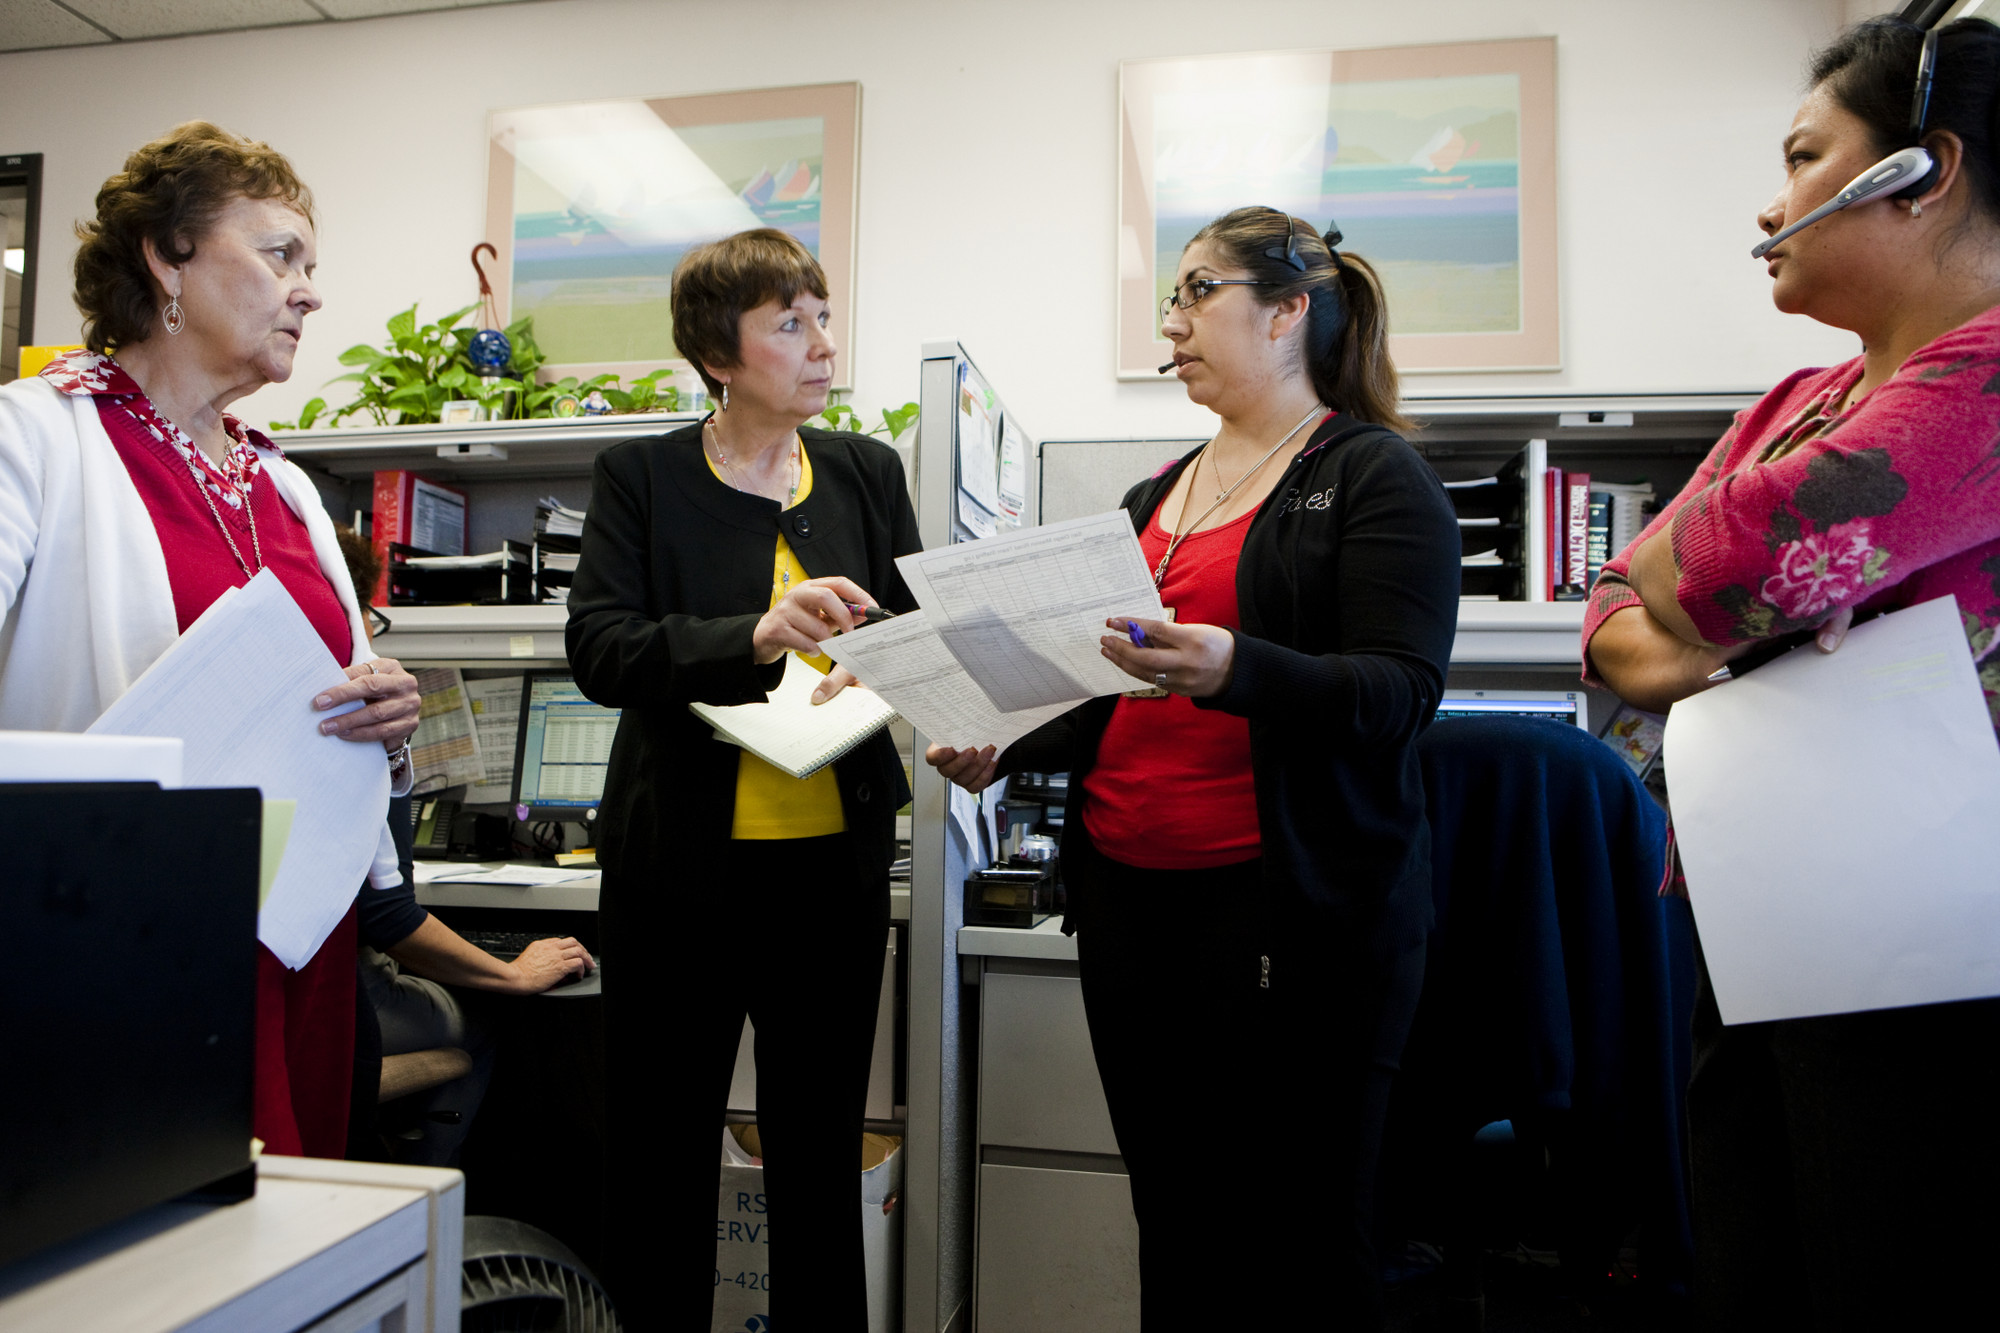 Four female health care workers standing in their morning huddle